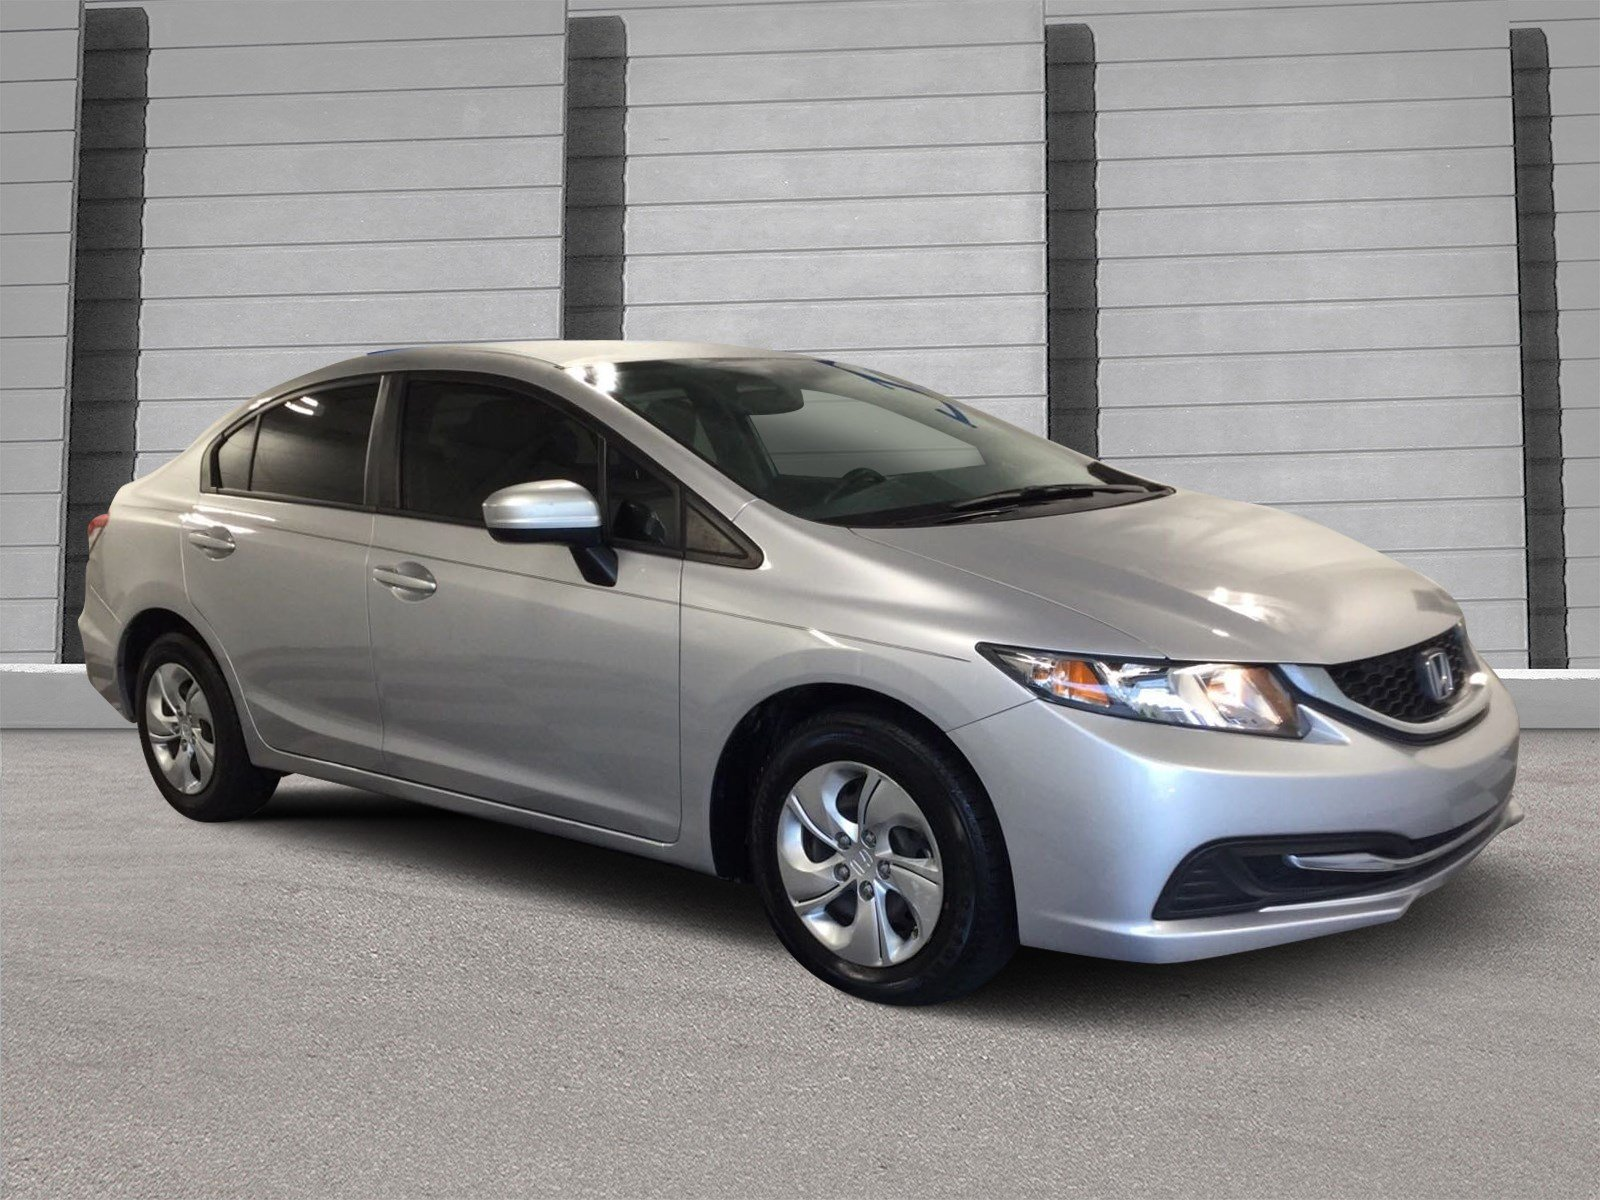 Delightful Pre Owned 2015 Honda Civic Sedan LX